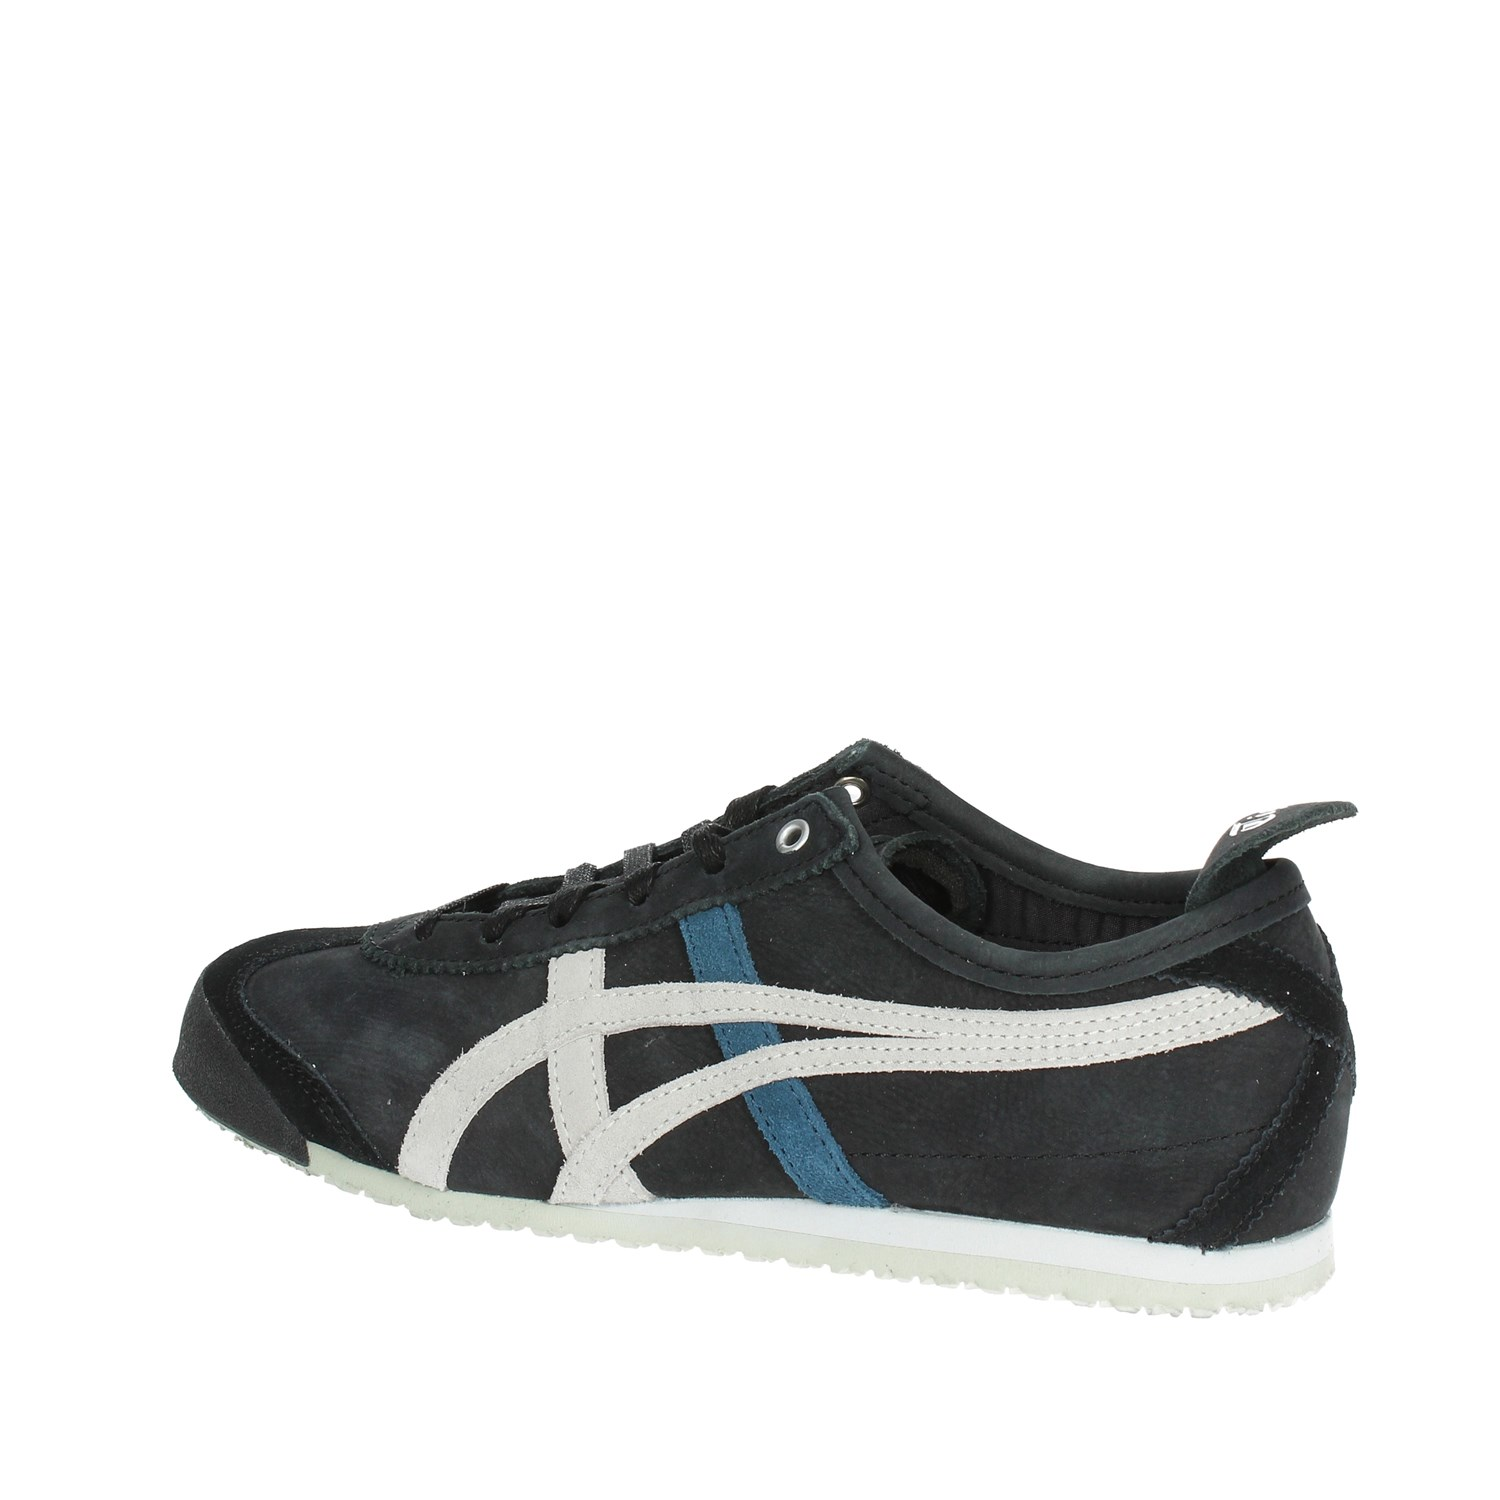 classic fit bce37 79308 Details about Onitsuka Tiger D832L..9096 Black Low Sneakers Women  Spring/Summer